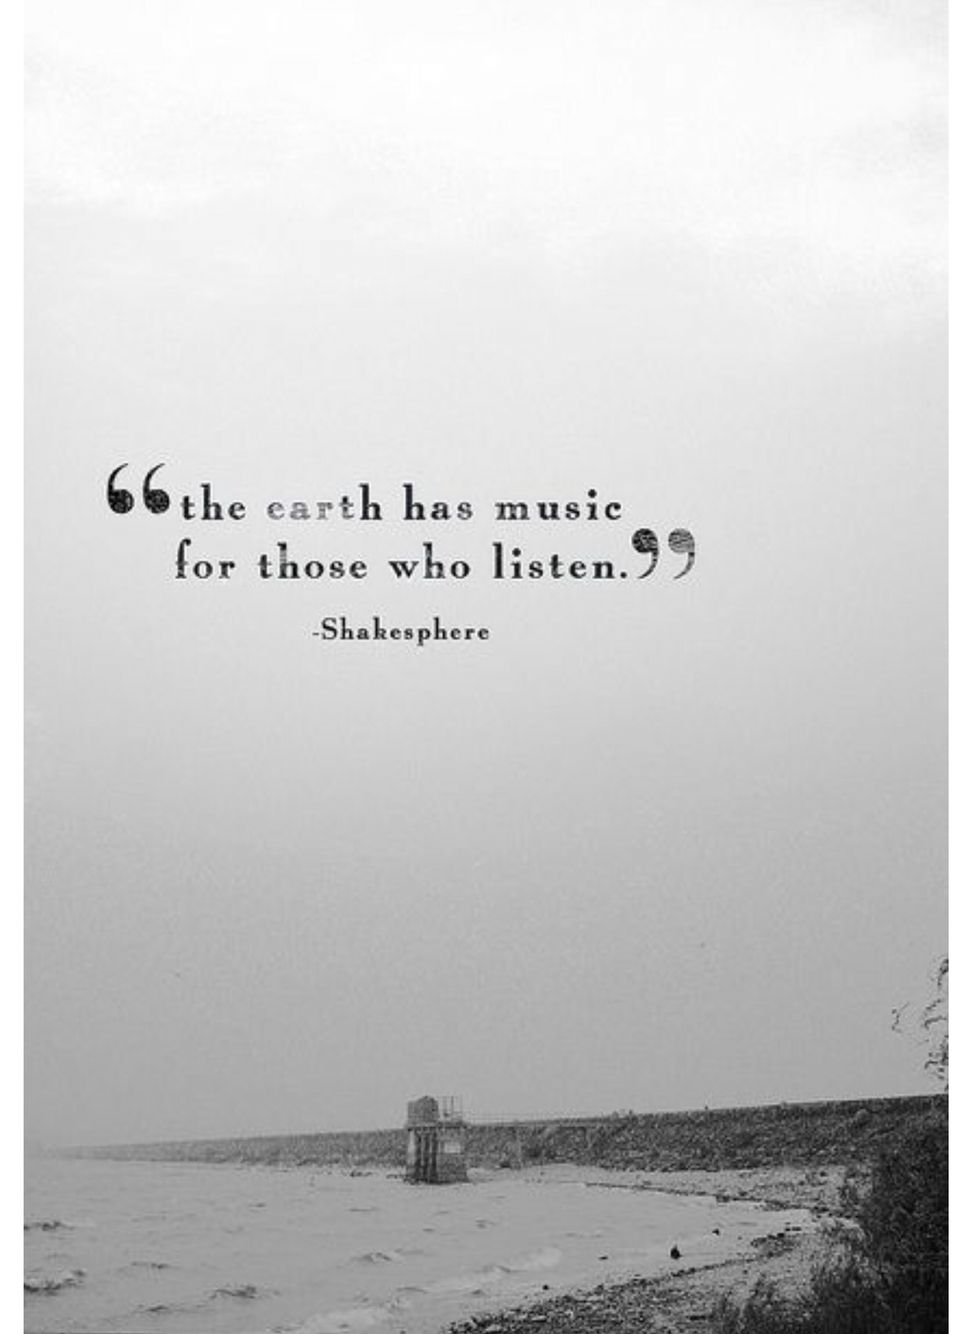 Famous Shakespeare Love Quotes Senior Quote  '16  Pinterest  Senior Quotes Poem And Inspirational